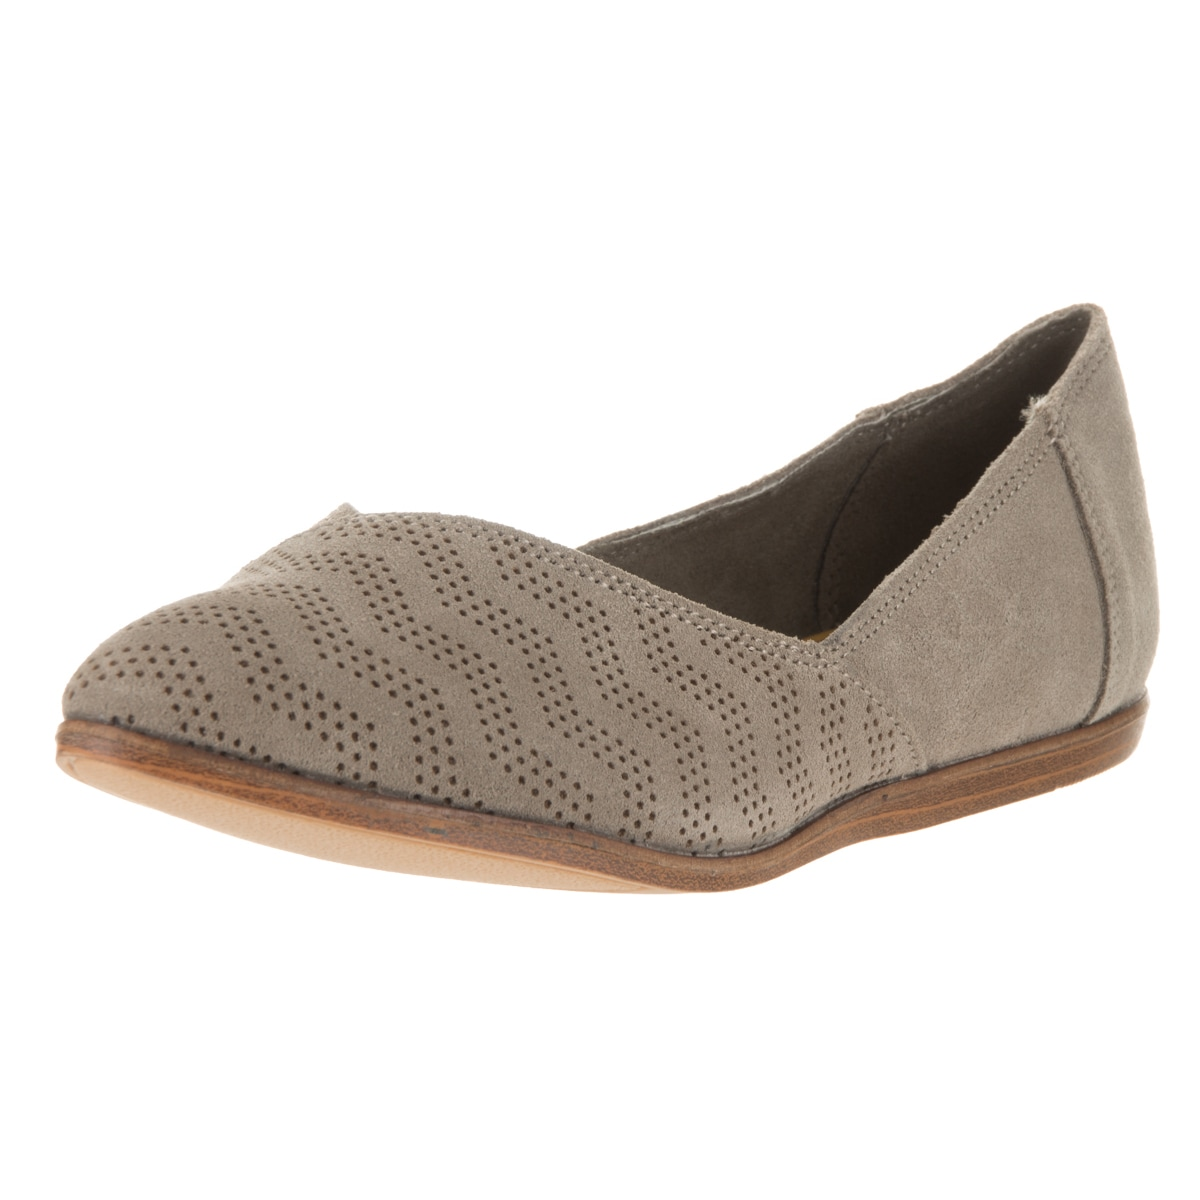 259d25a7e3e Shop Toms Women s Jutti Flat Desert Taupe Suede Chevron Embossed Casual  Shoes - Free Shipping Today - Overstock - 13344353